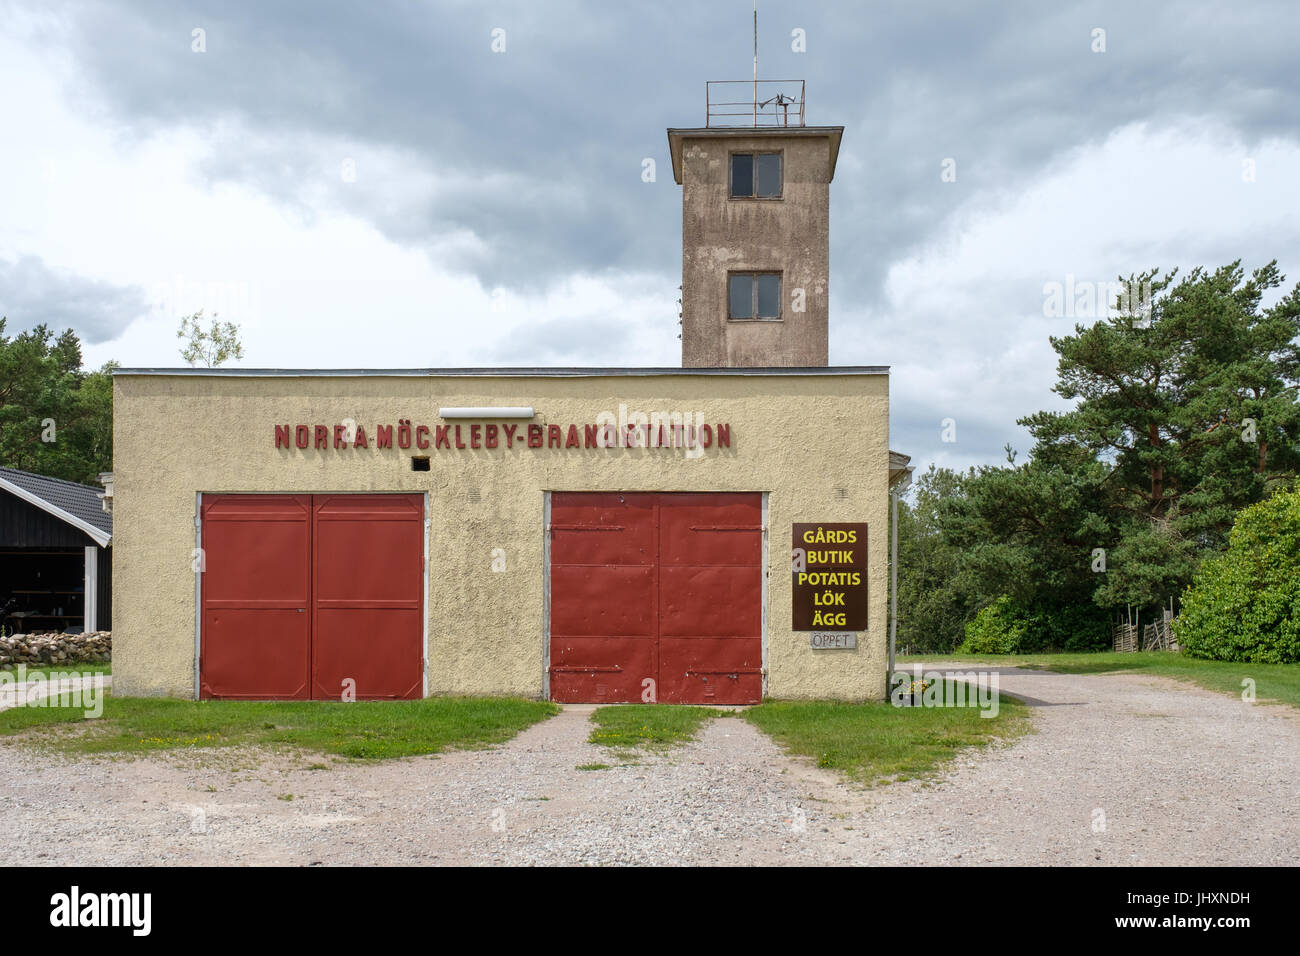 Abandoned fire station in Norra Möckleby on Swedish Baltic sea island Öland. The fire station serves as - Stock Image